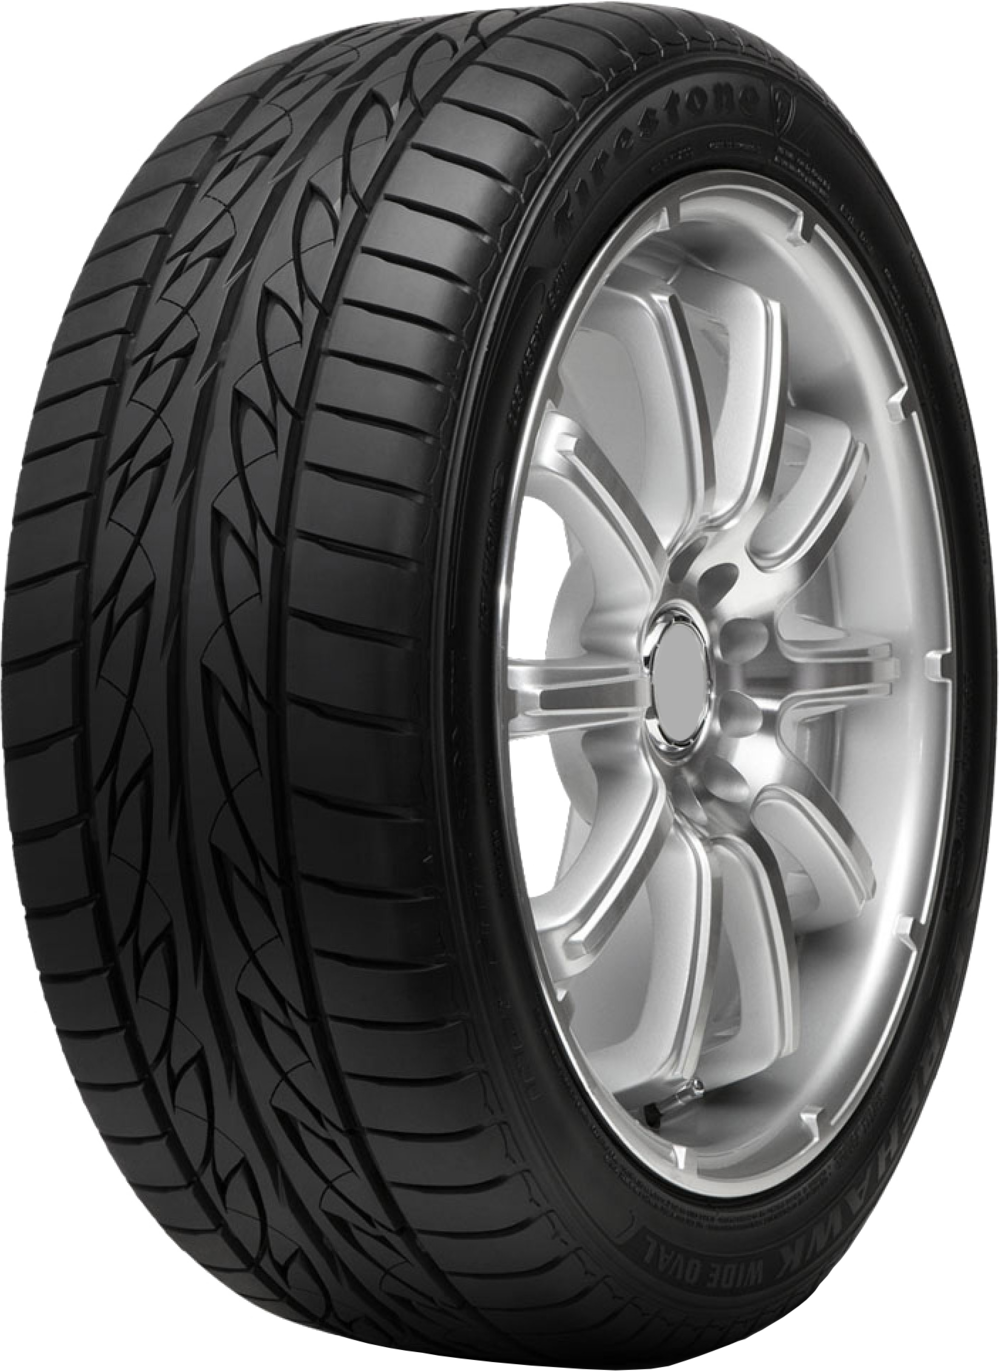 Wheel clipart semi tire. Top best summer performance